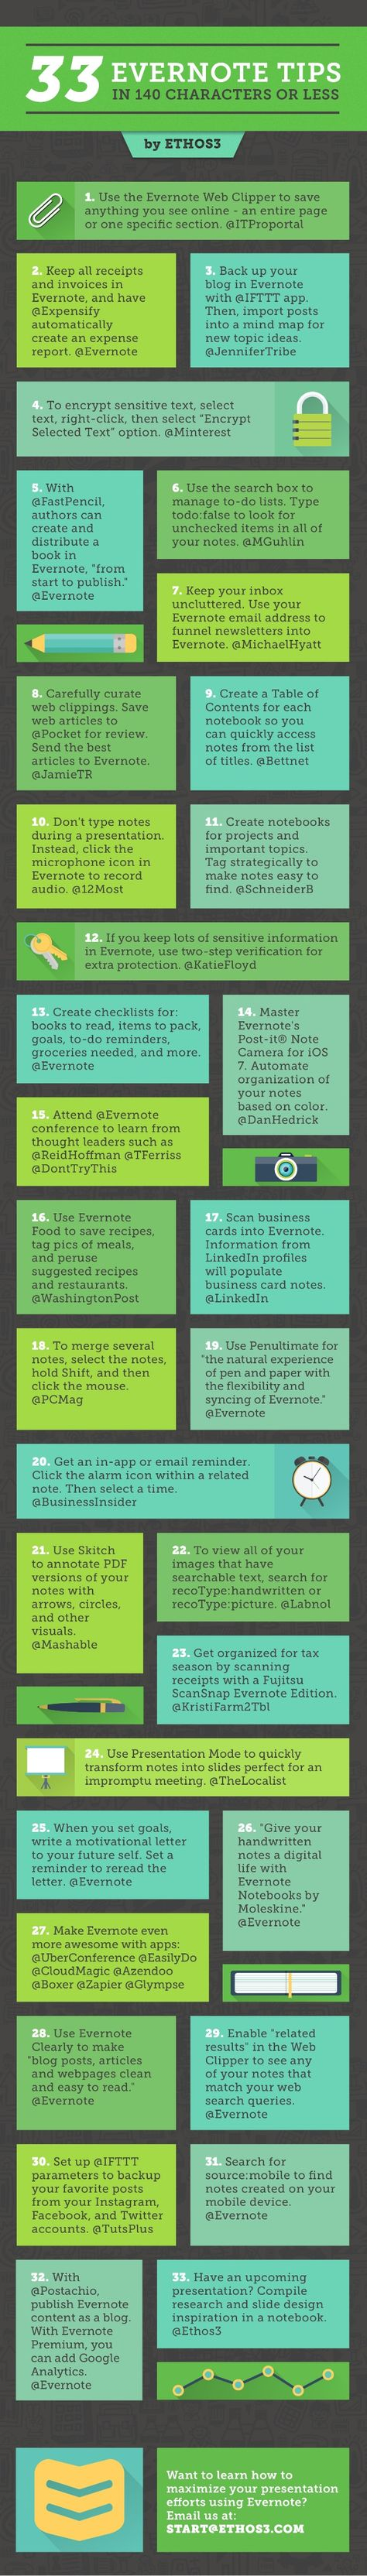 33 Evernote Tips, in 140 characters or less by Ethos3   Presentation Design and Training via slideshare